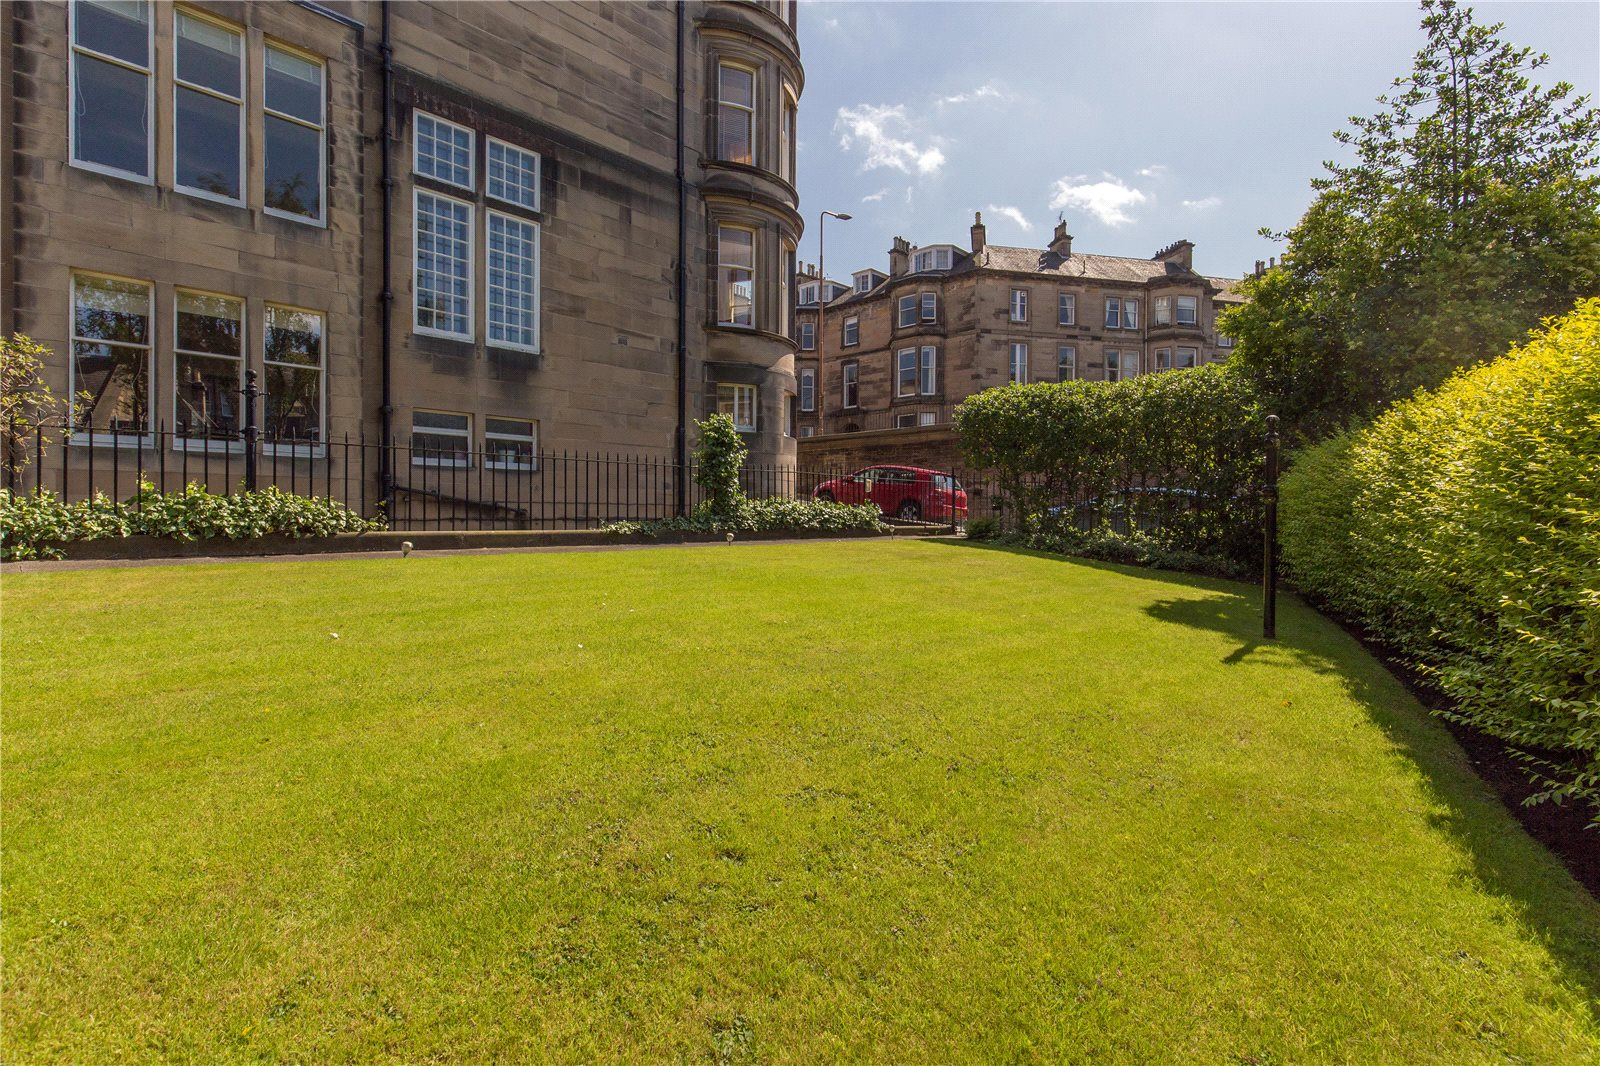 Rothesay terrace edinburgh eh3 a luxury home for sale for 3 rothesay terrace